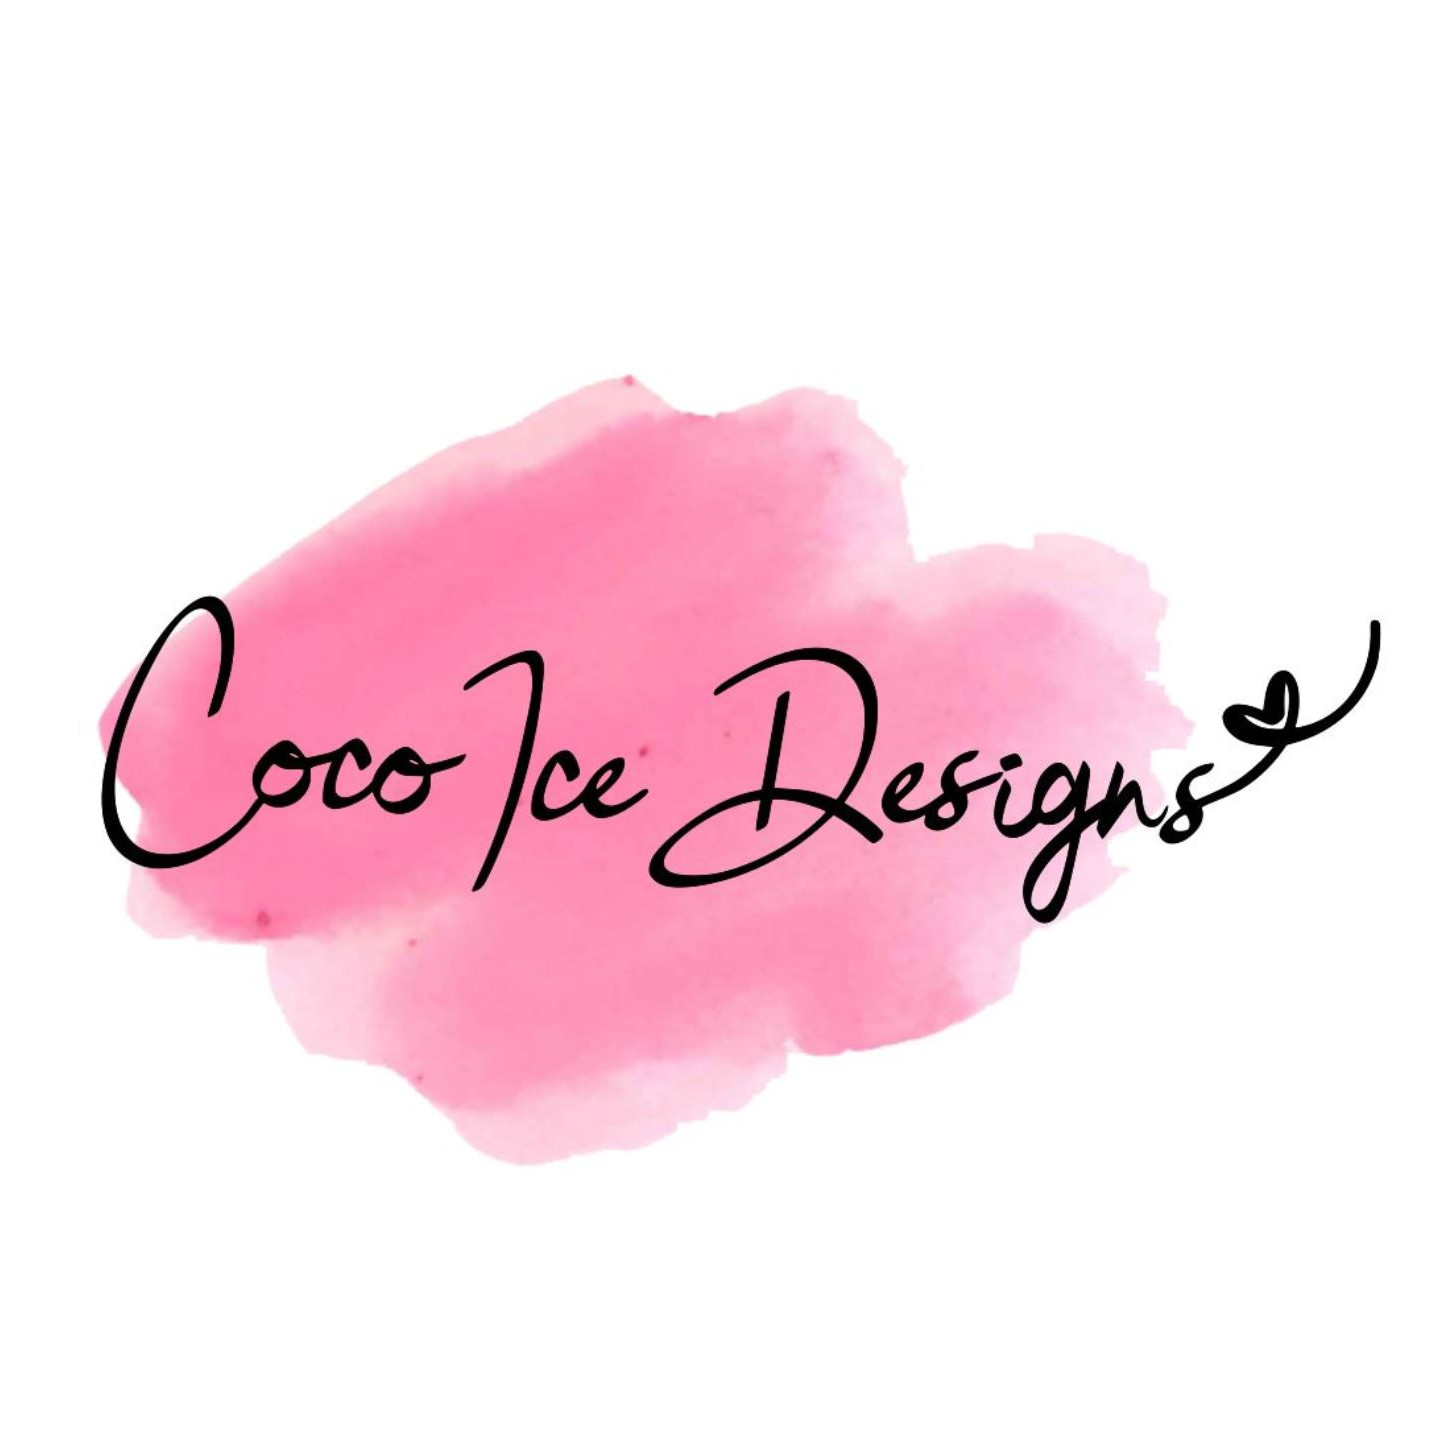 CocoIceDesigns's profile picture